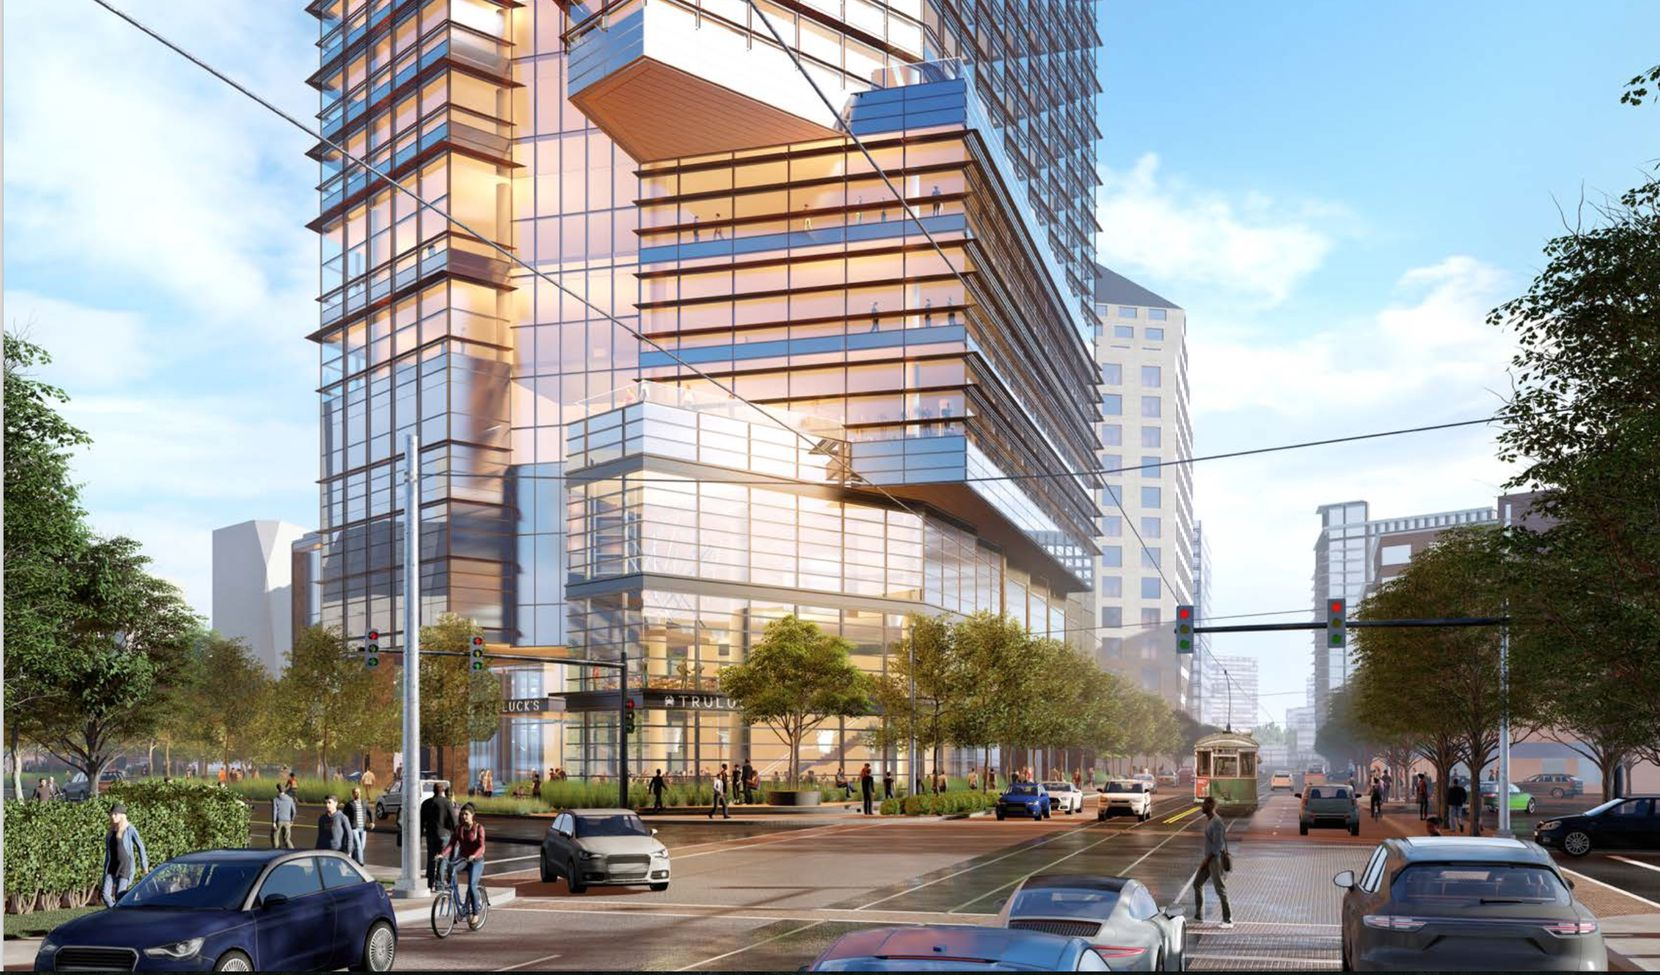 The 27-story tower would replace Truluck's restaurant and the former Gold's Gym buildings.